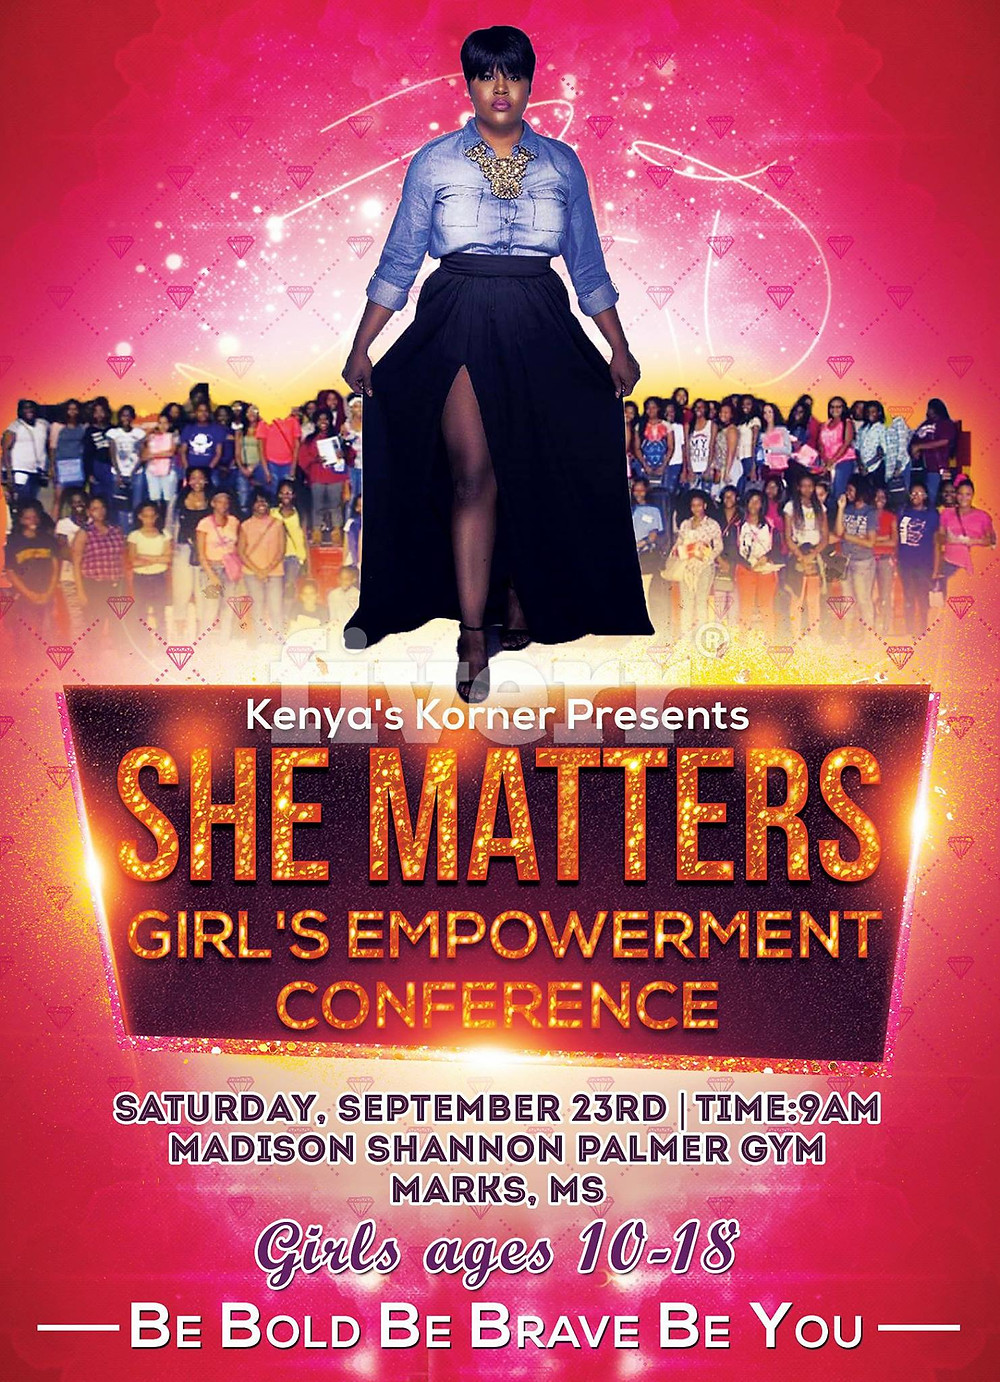 She Matters Girl's Empowerment Conference